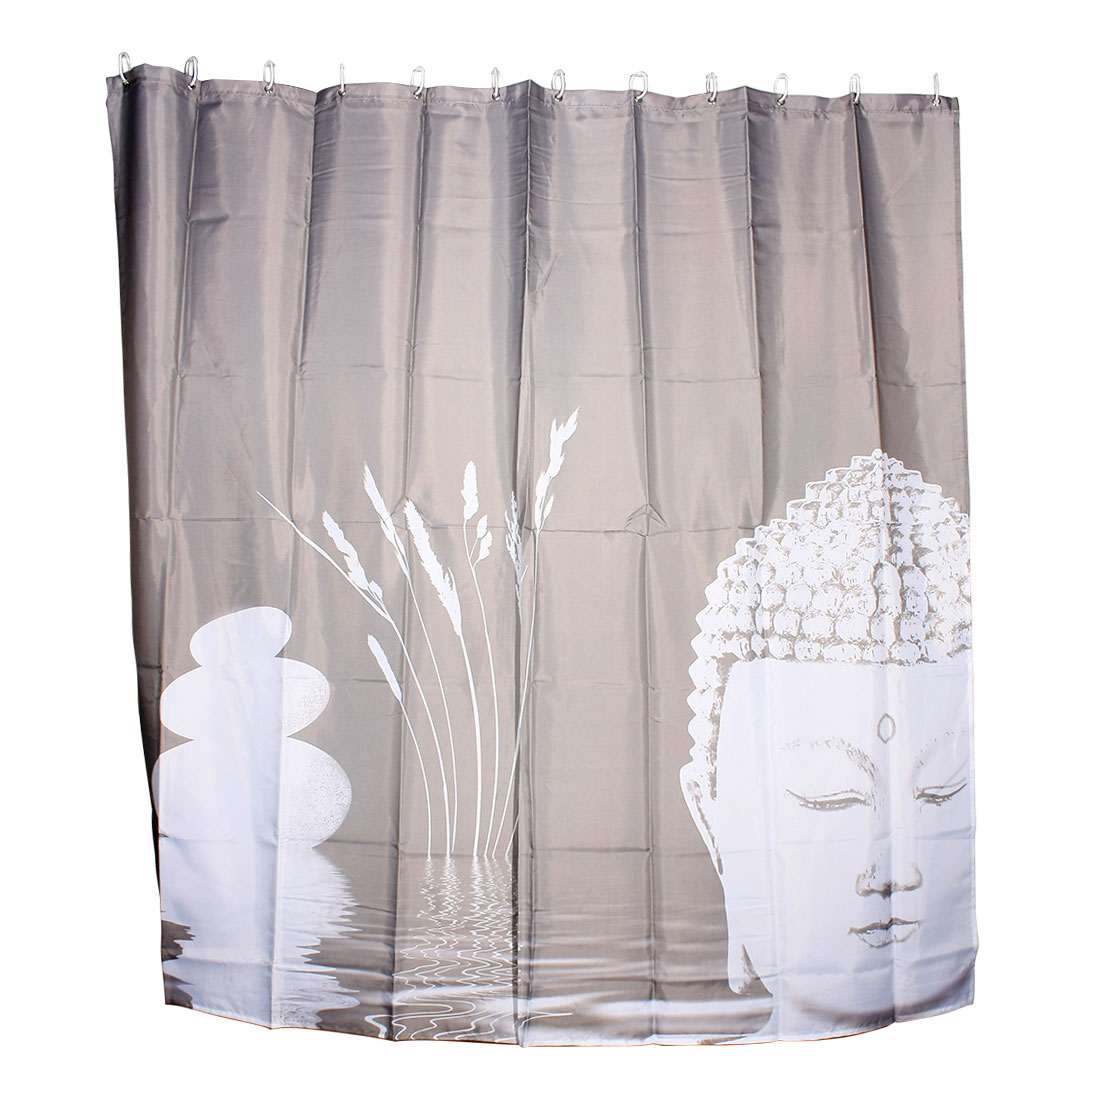 Bathroom Household Article Buddha Pattern Shower Curtain w 12 Hooks 180 x 180cm